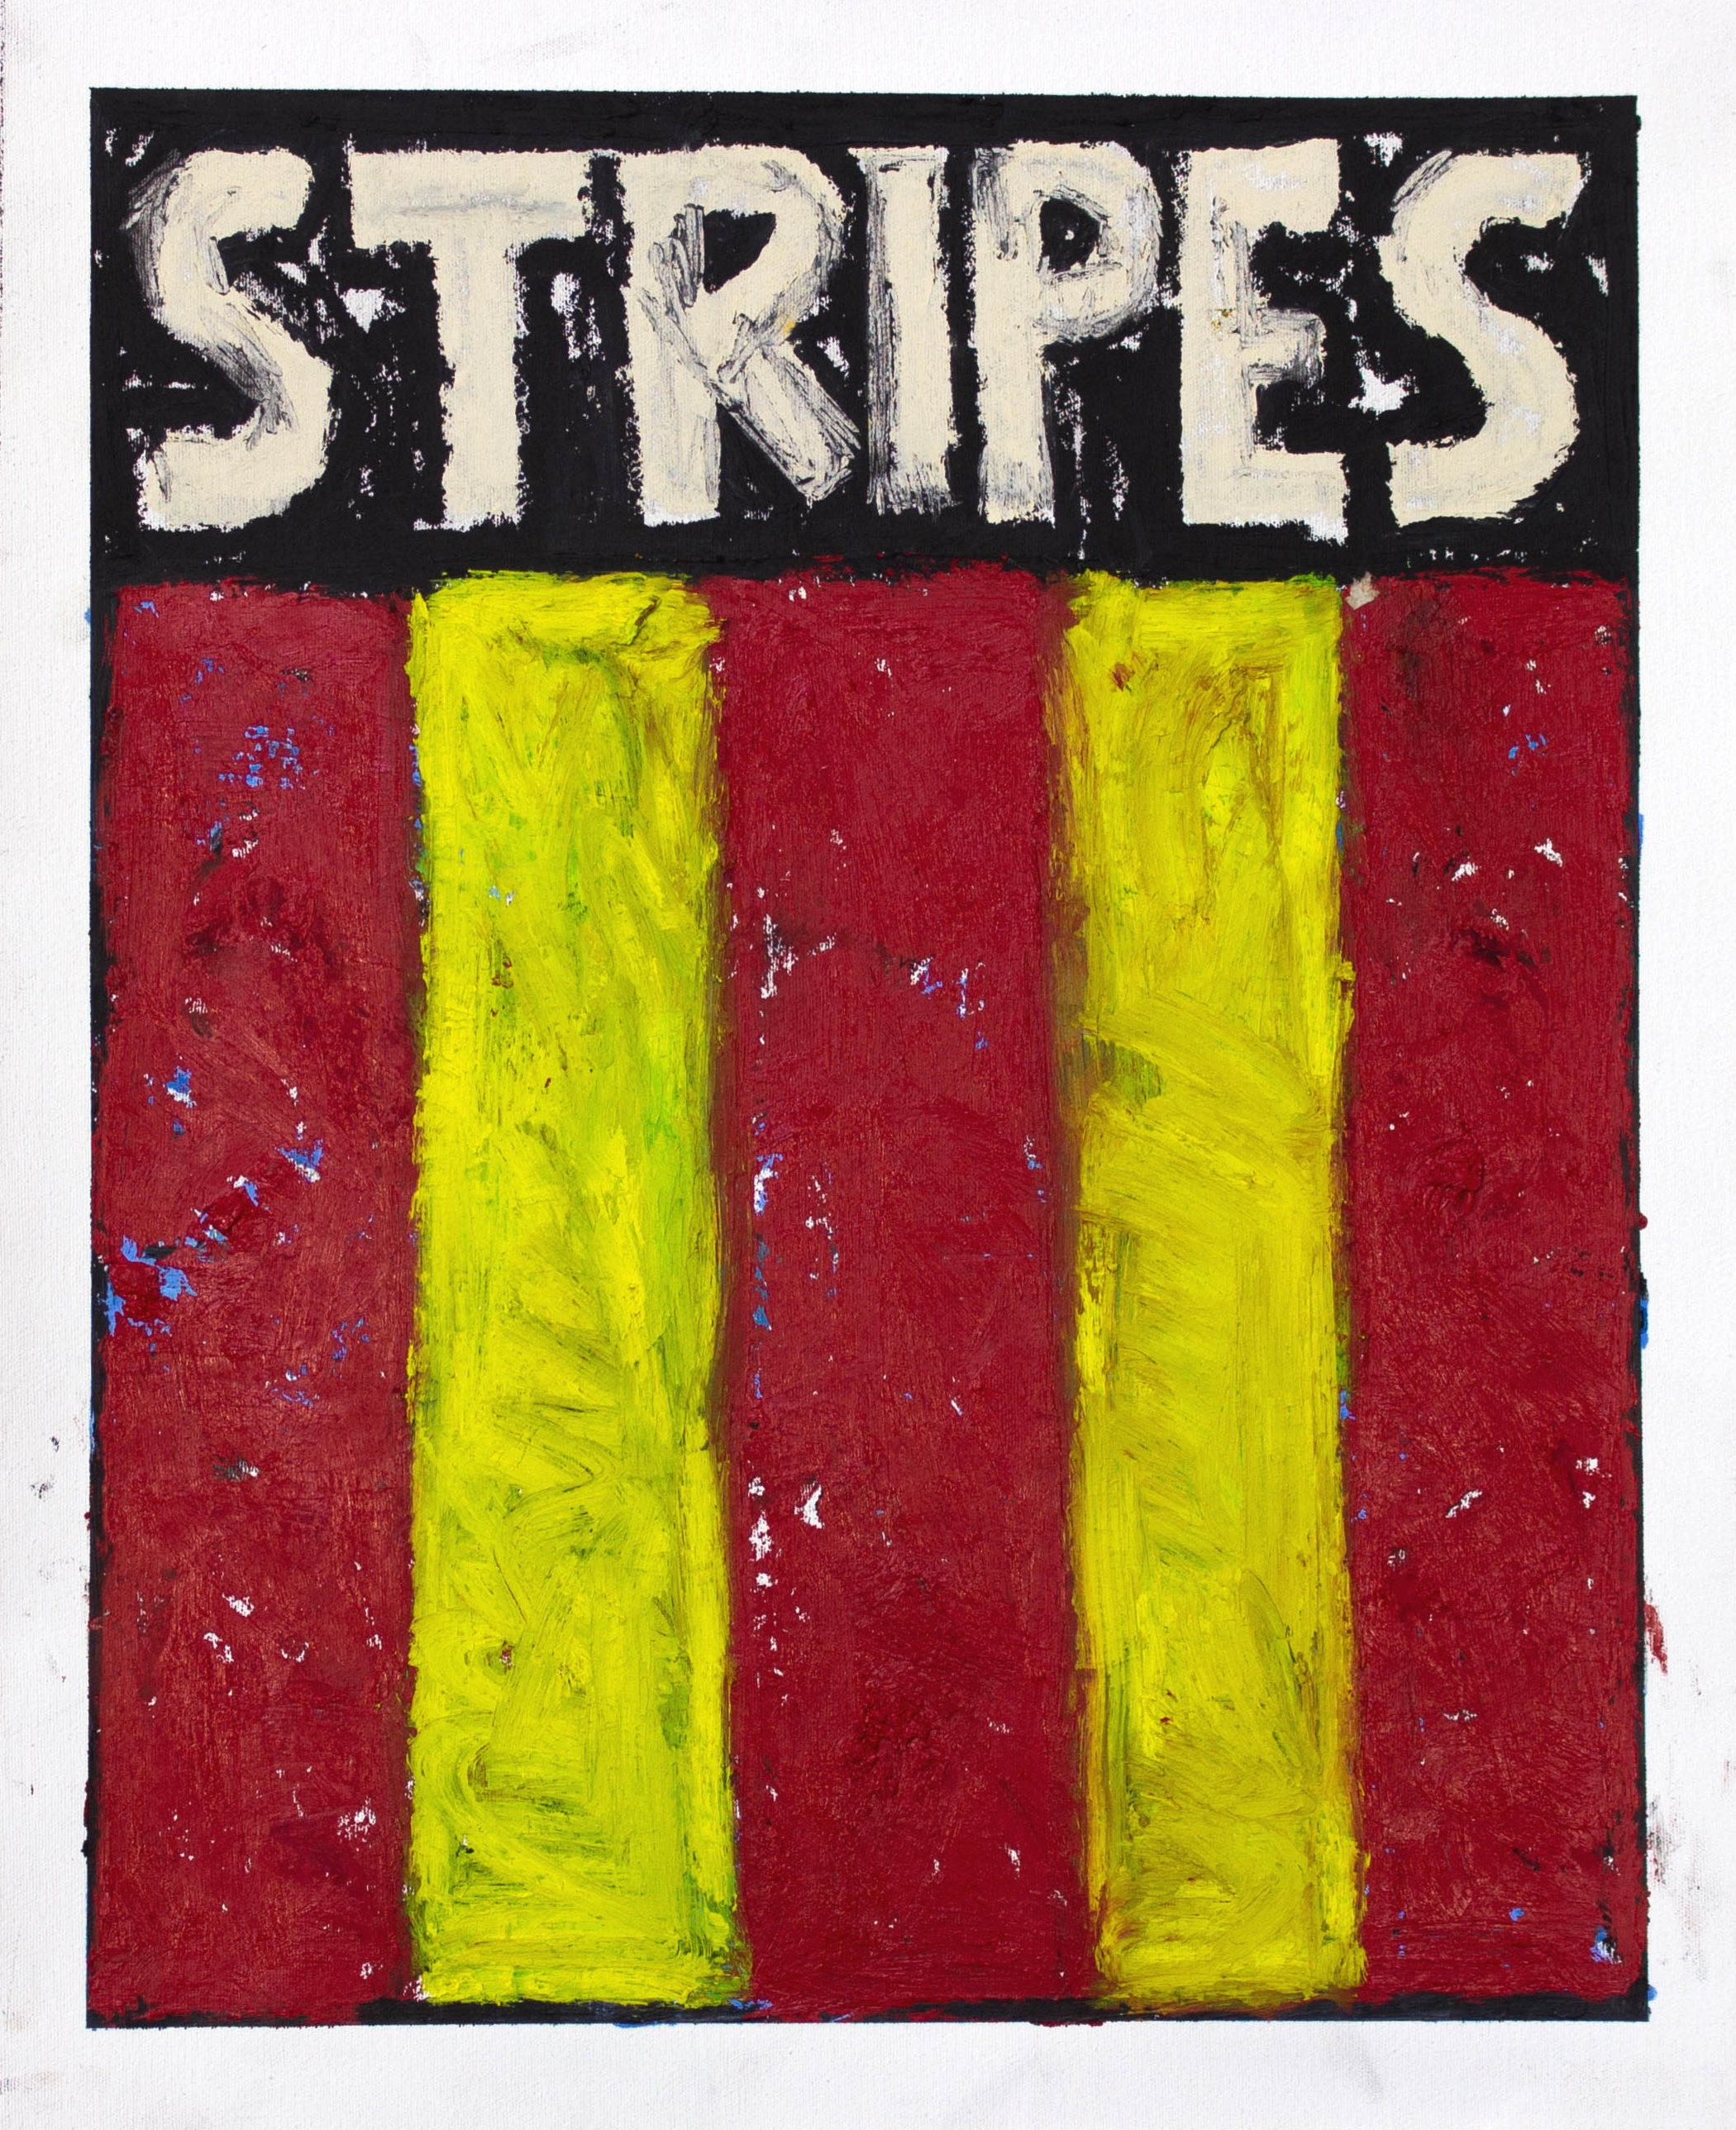 """""""STRIPES"""" / 2019 OILSTICK ON UNSTRETCHED CANVAS FRAMED IN WHITE WITH ARTGLASS AR70 42 X 51 CM 4900 NOK"""